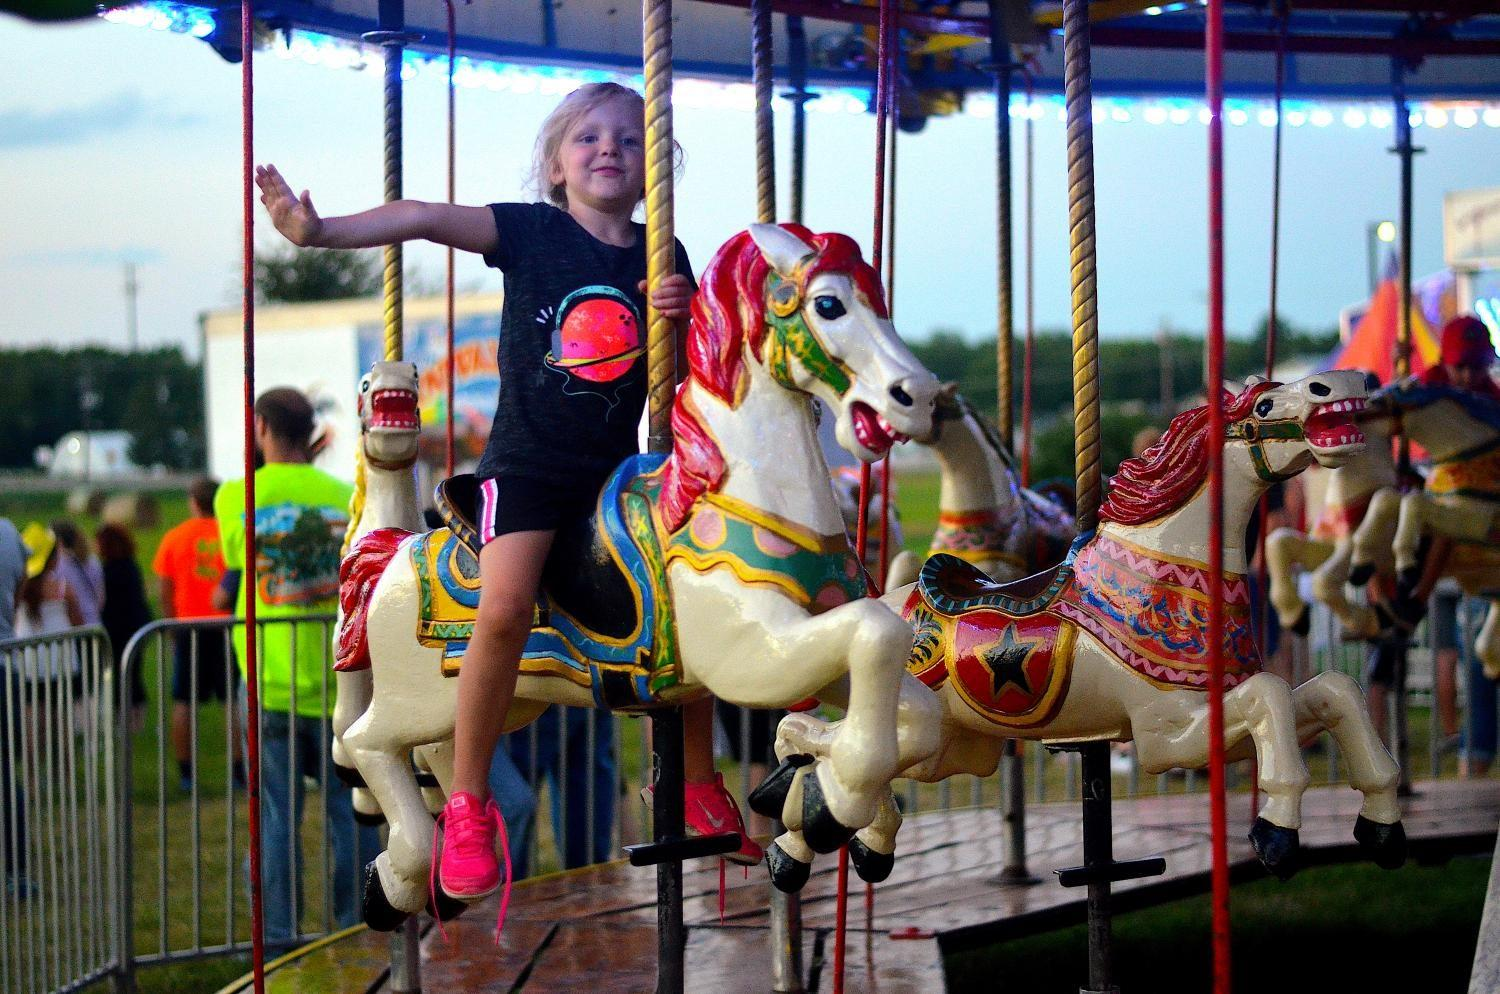 Imitating an airplane, a young girl rides the merry-go-round at the Johnson County Fair in Iowa City on July 27.